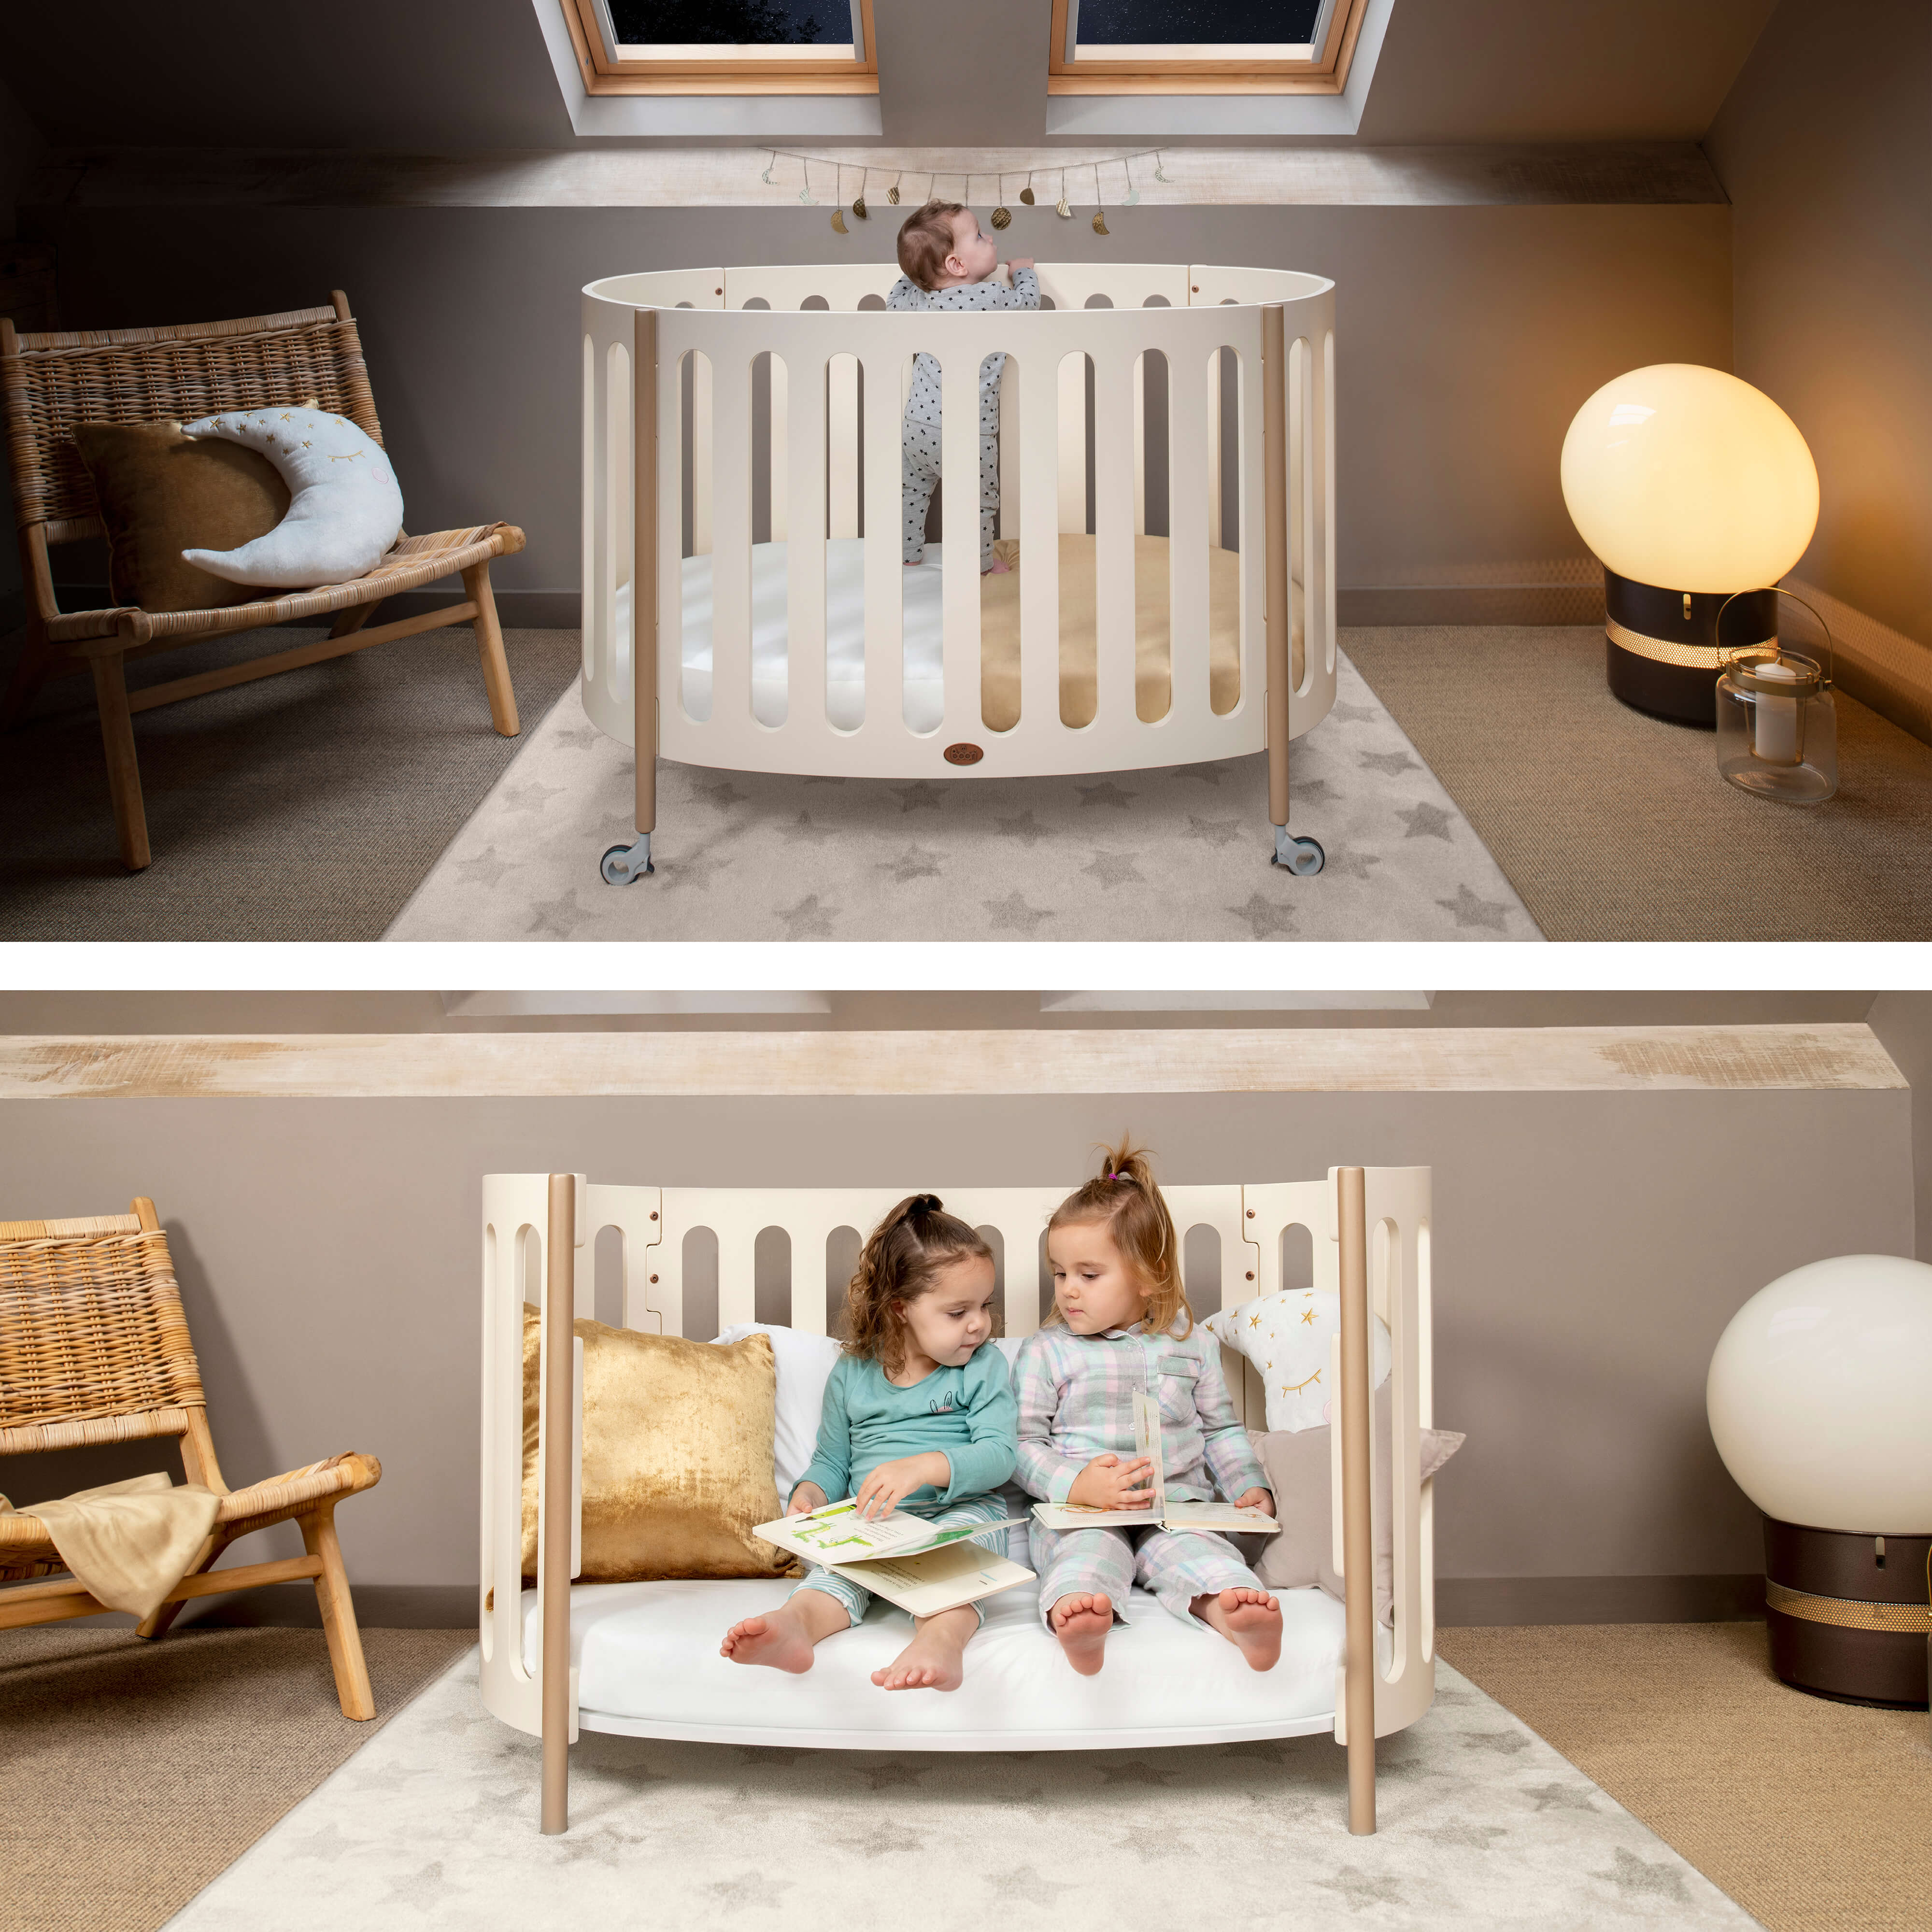 Luna Oval Cot in cot bed and toddler sofa positons